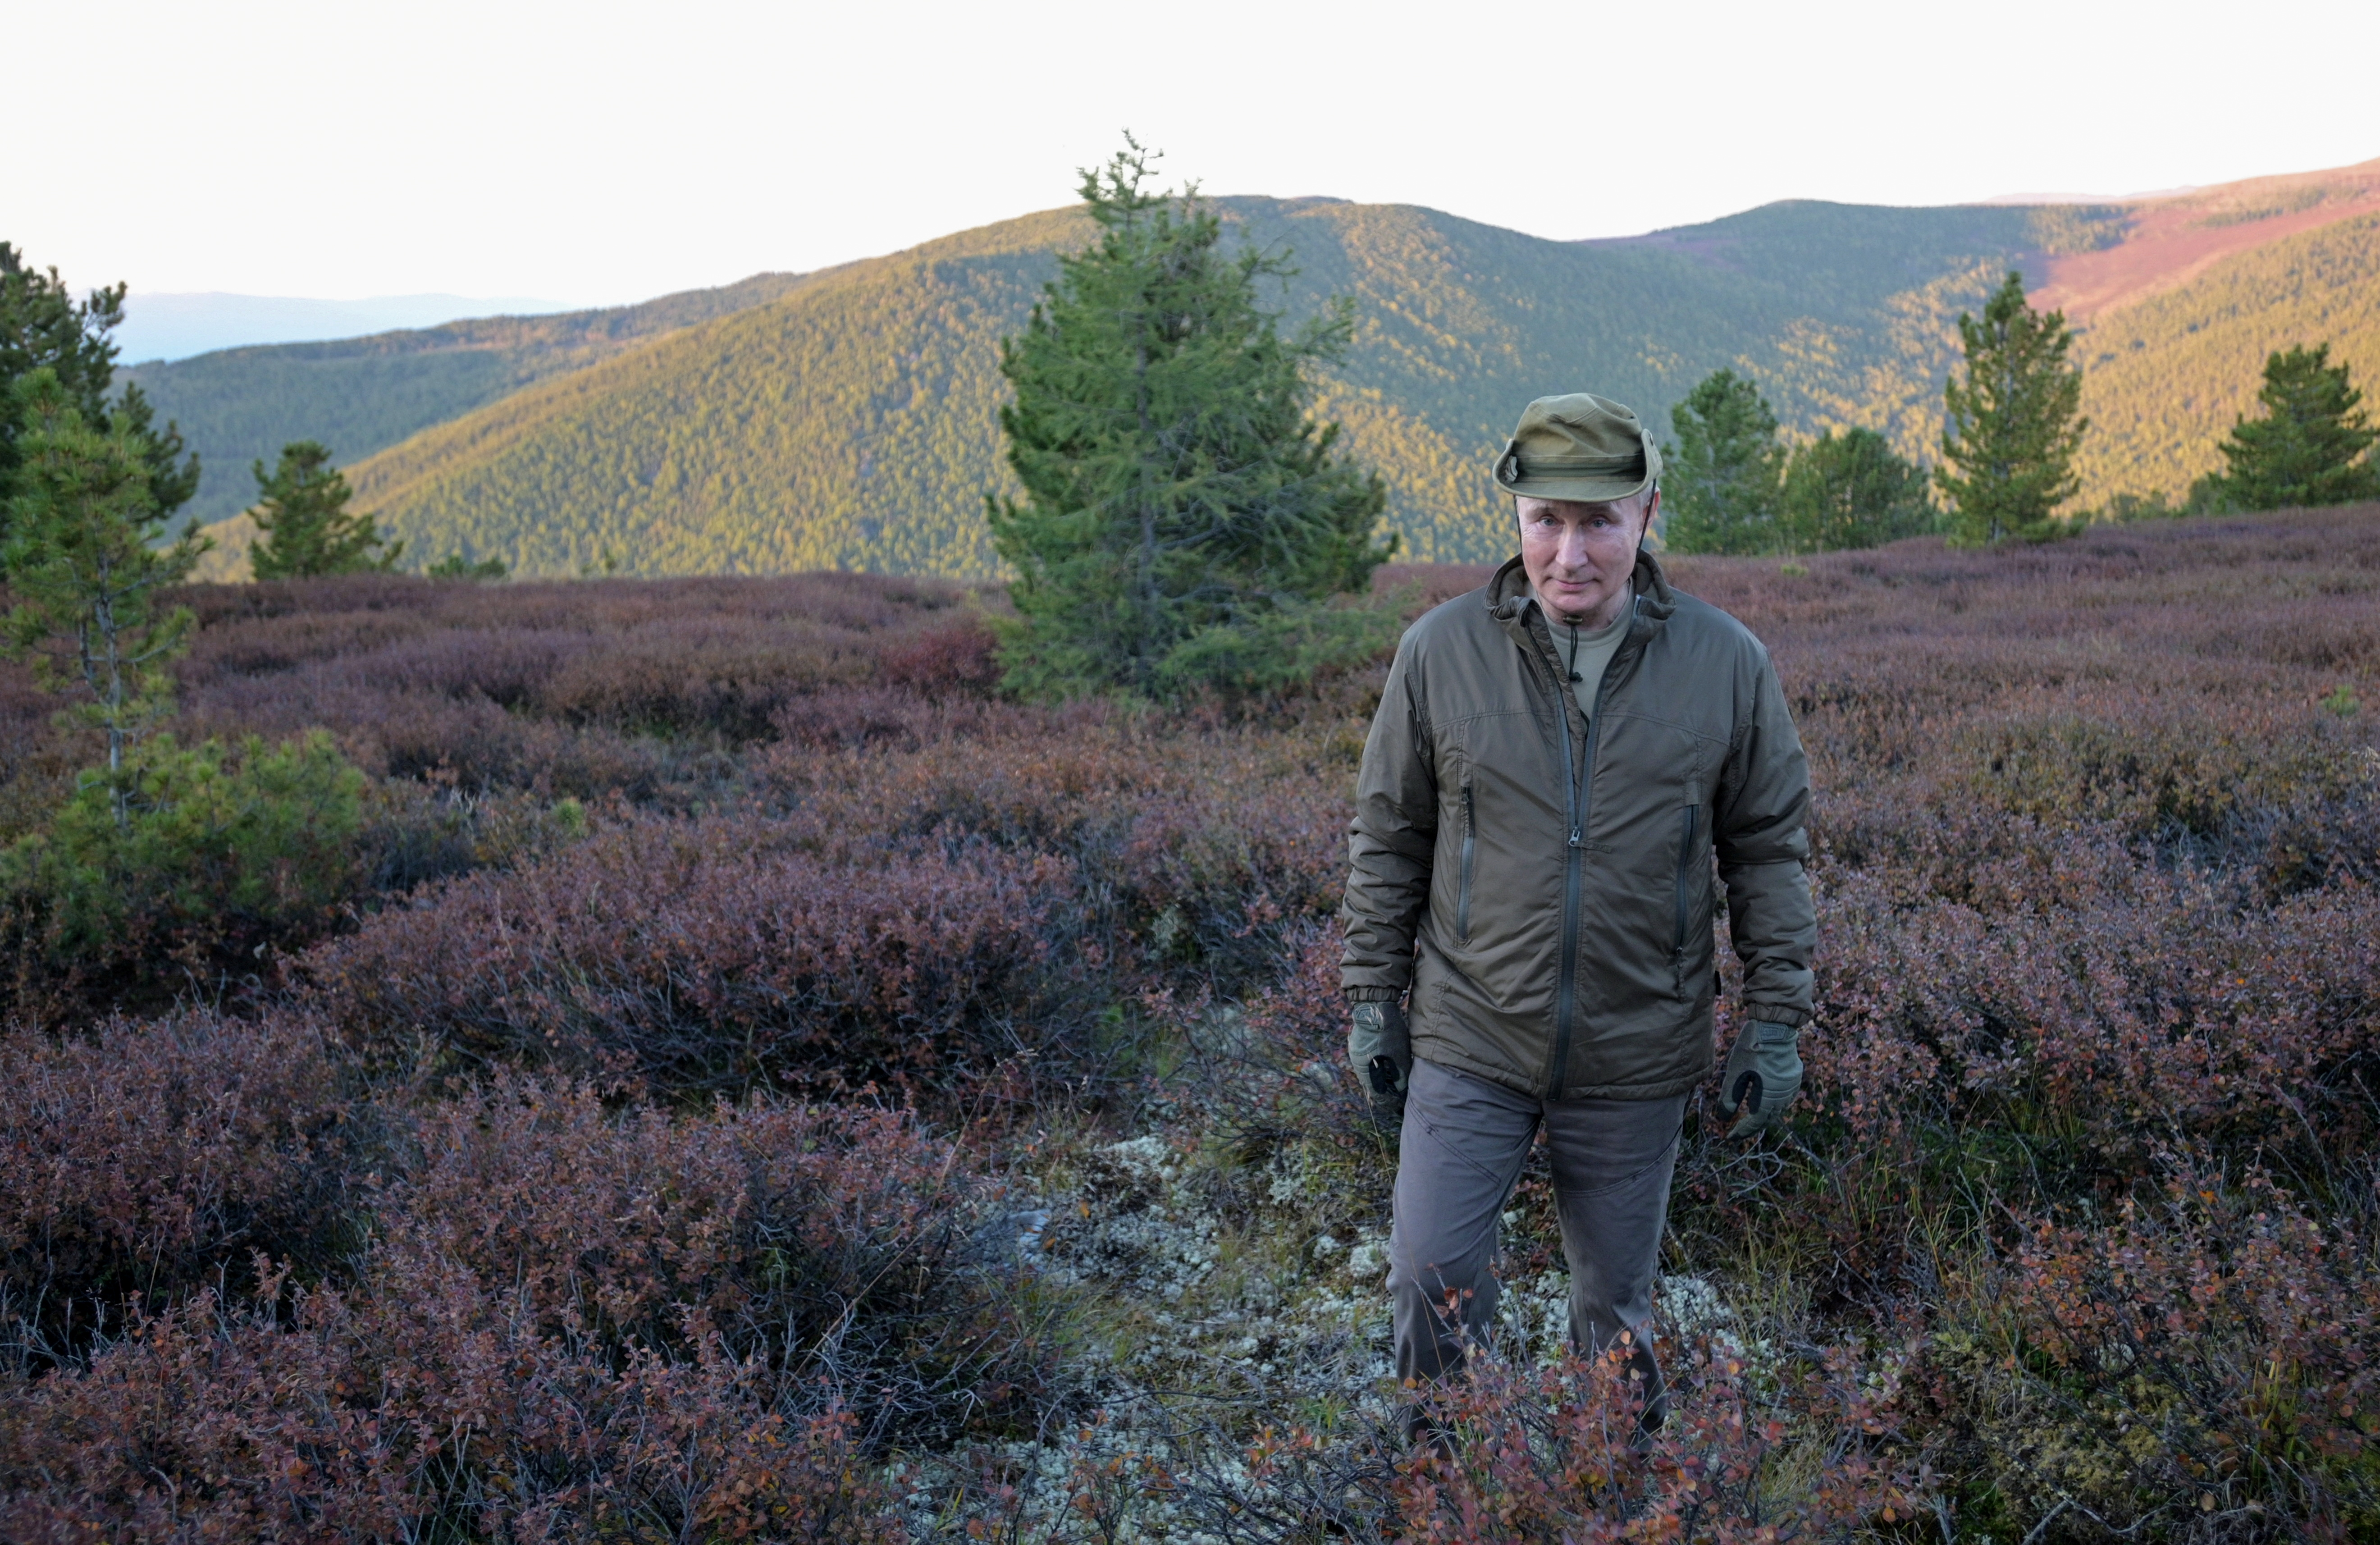 Russian President Vladimir Putin spends a short vacation at an unknown location in Siberia, Russia, in this undated photo taken in September 2021 and released September 26, 2021. Sputnik/Alexei Druzhinin/Kremlin via REUTERS